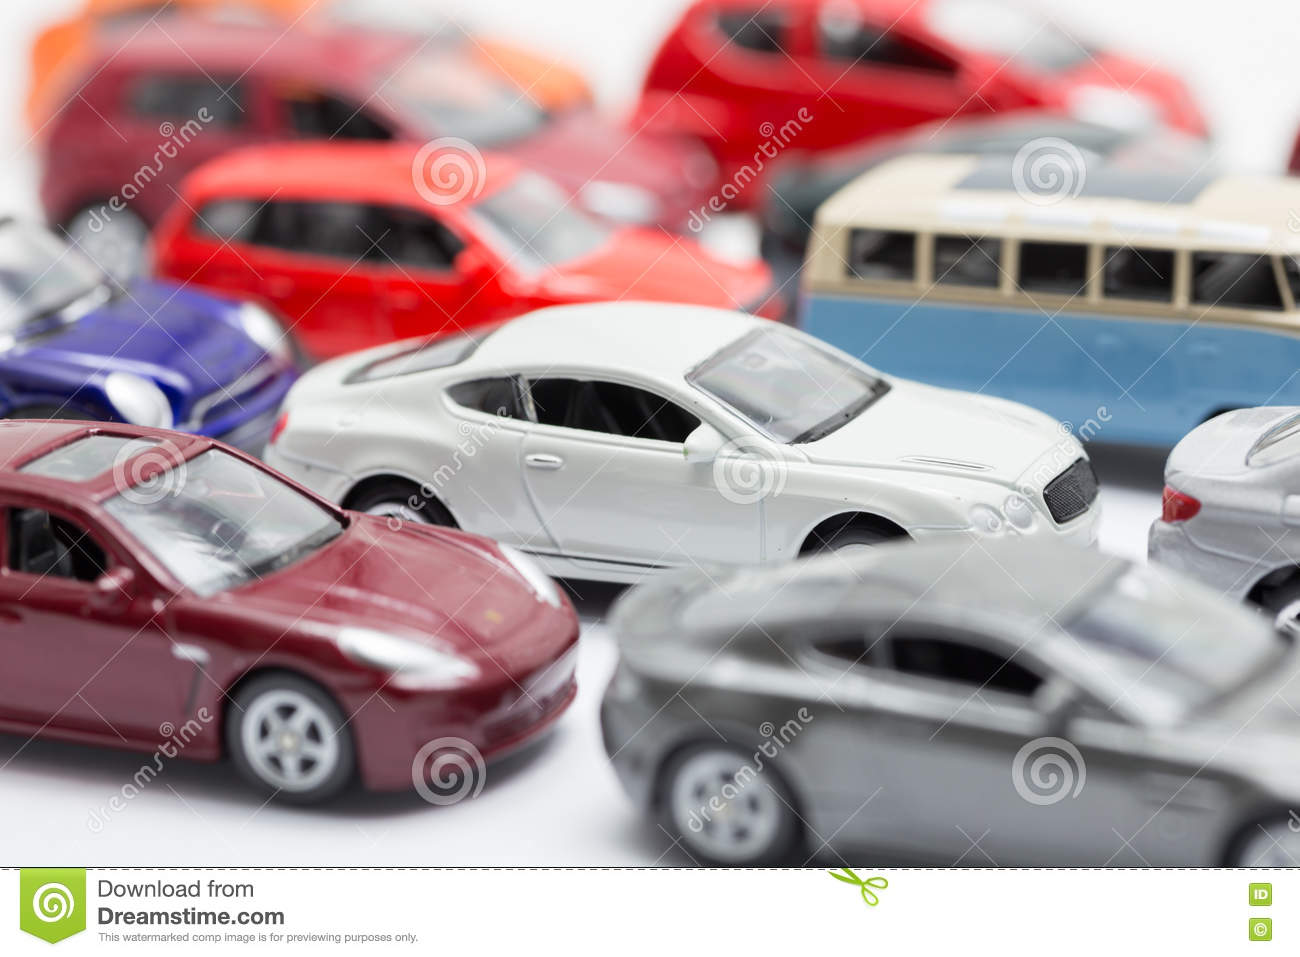 Small Toy Cars : Small toy cars stock photo image